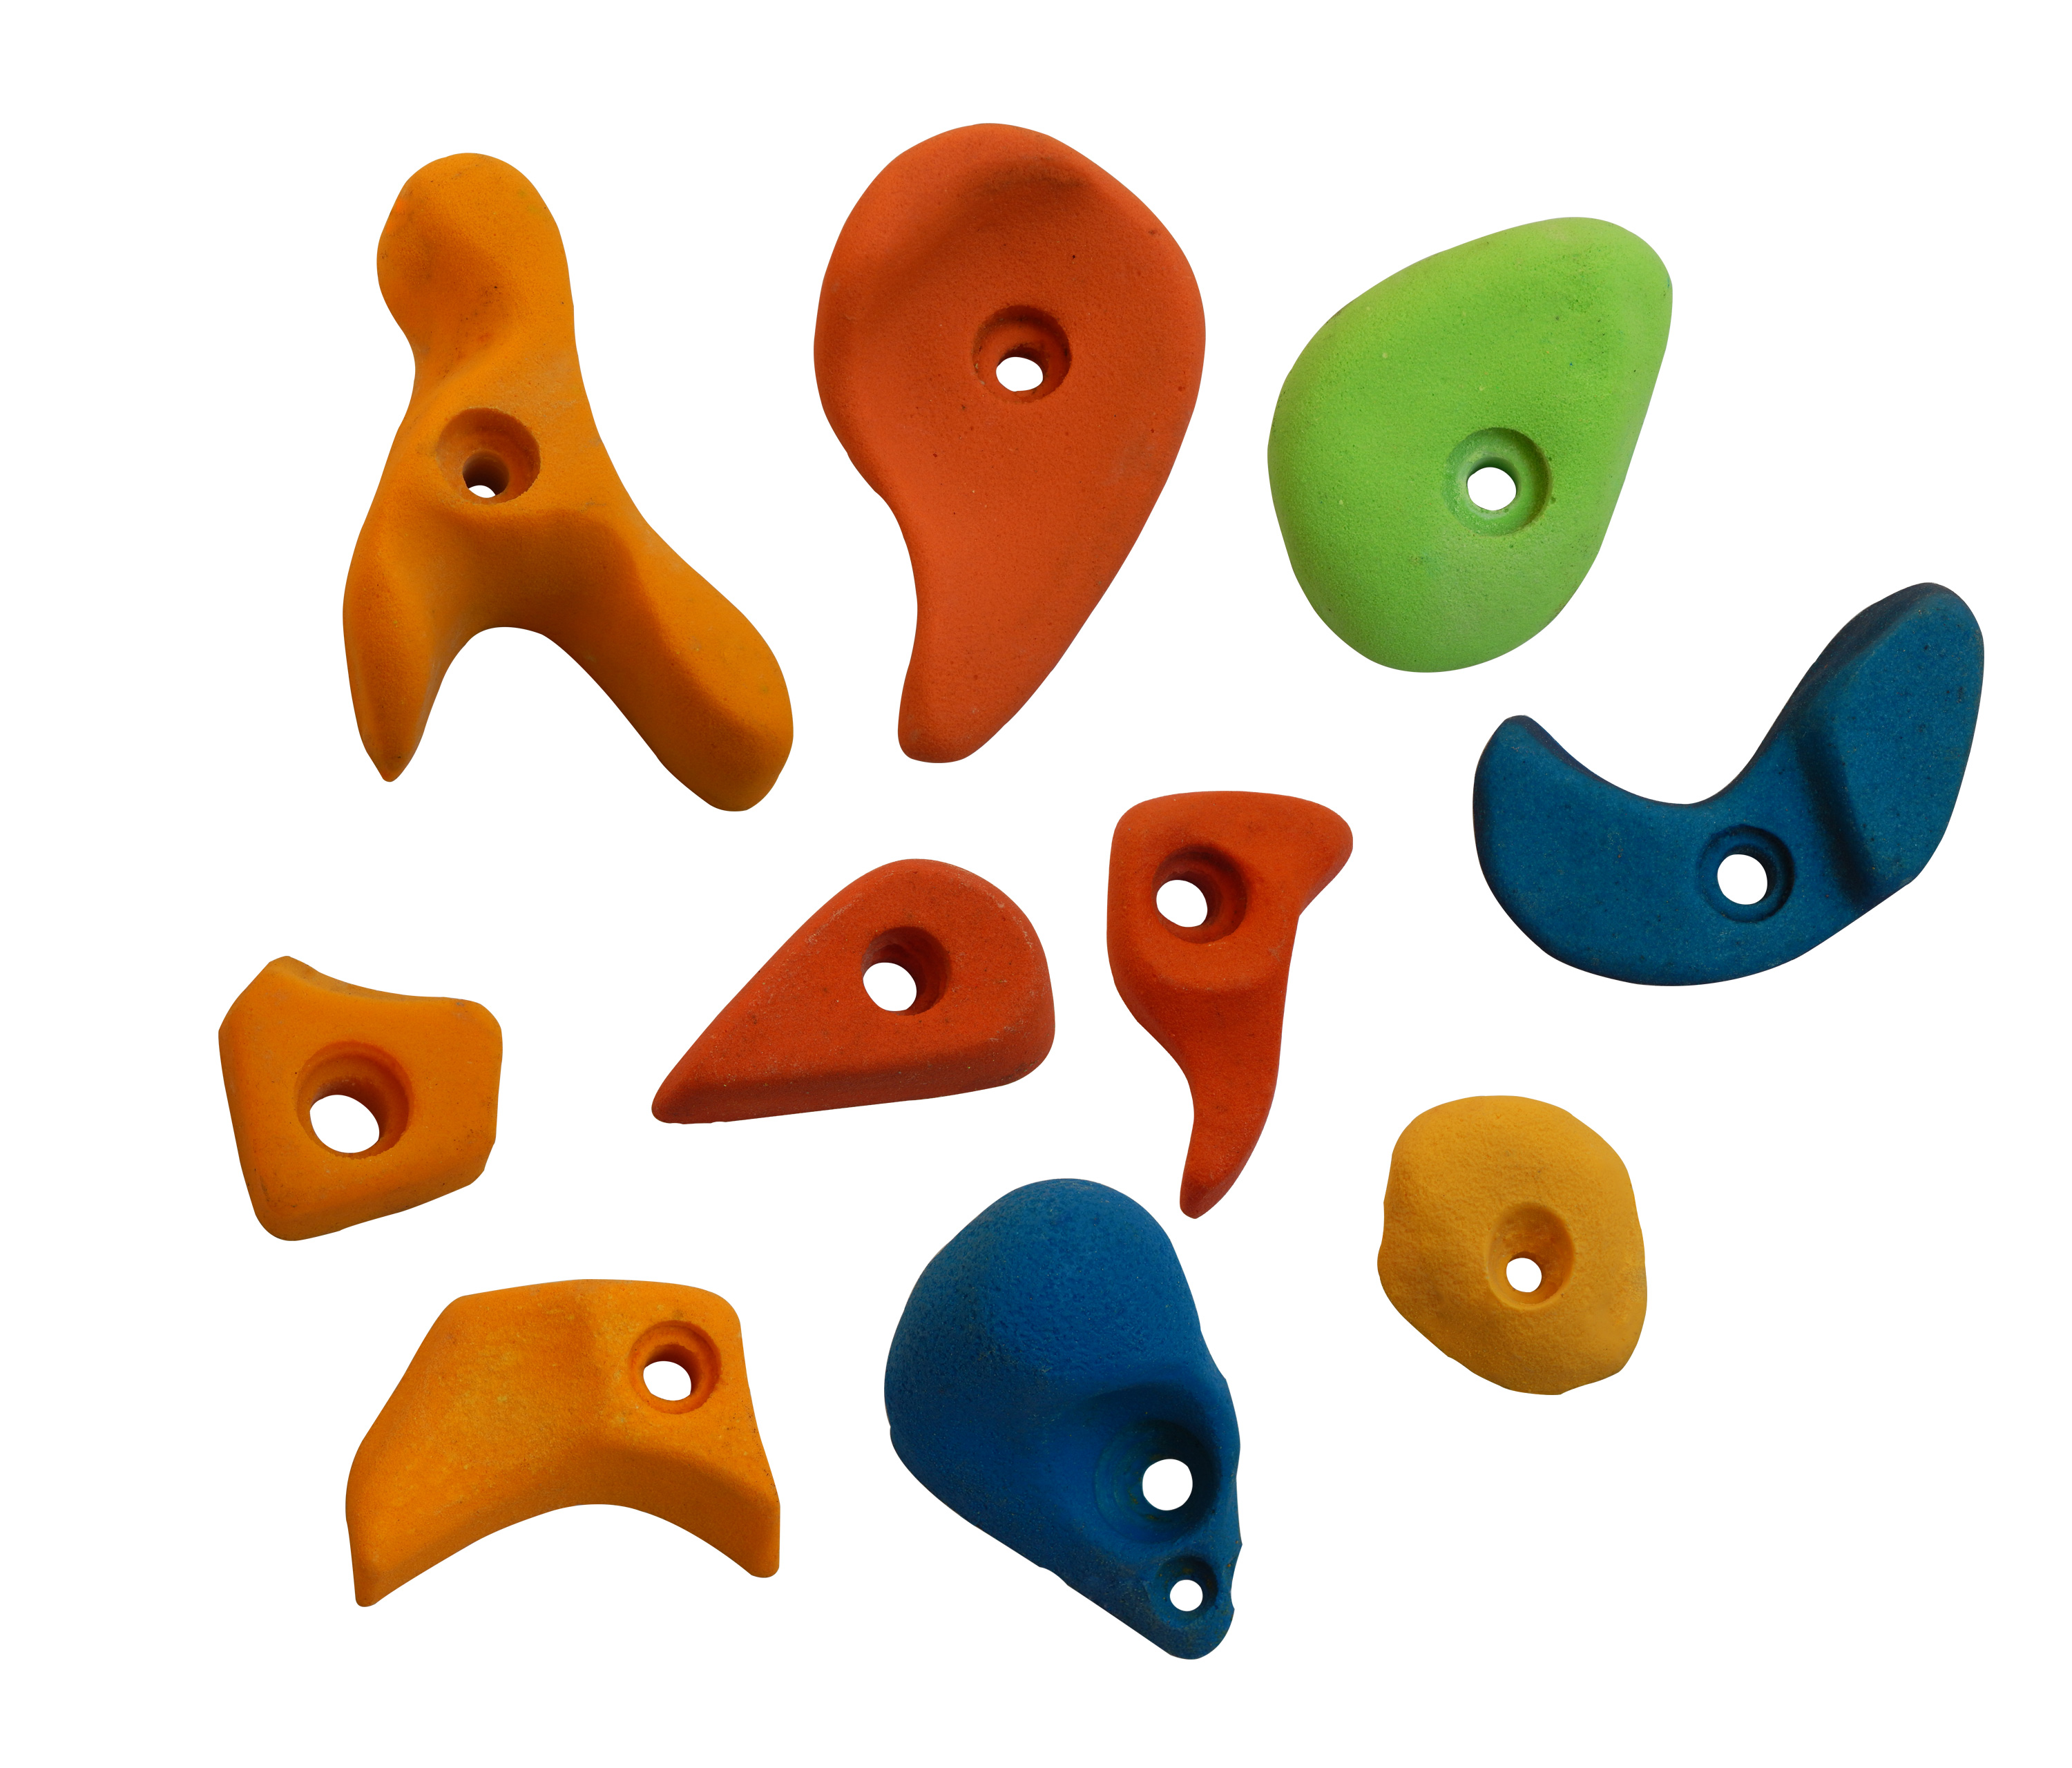 Mix Climbing Holds Manufacturers in Gurgaon